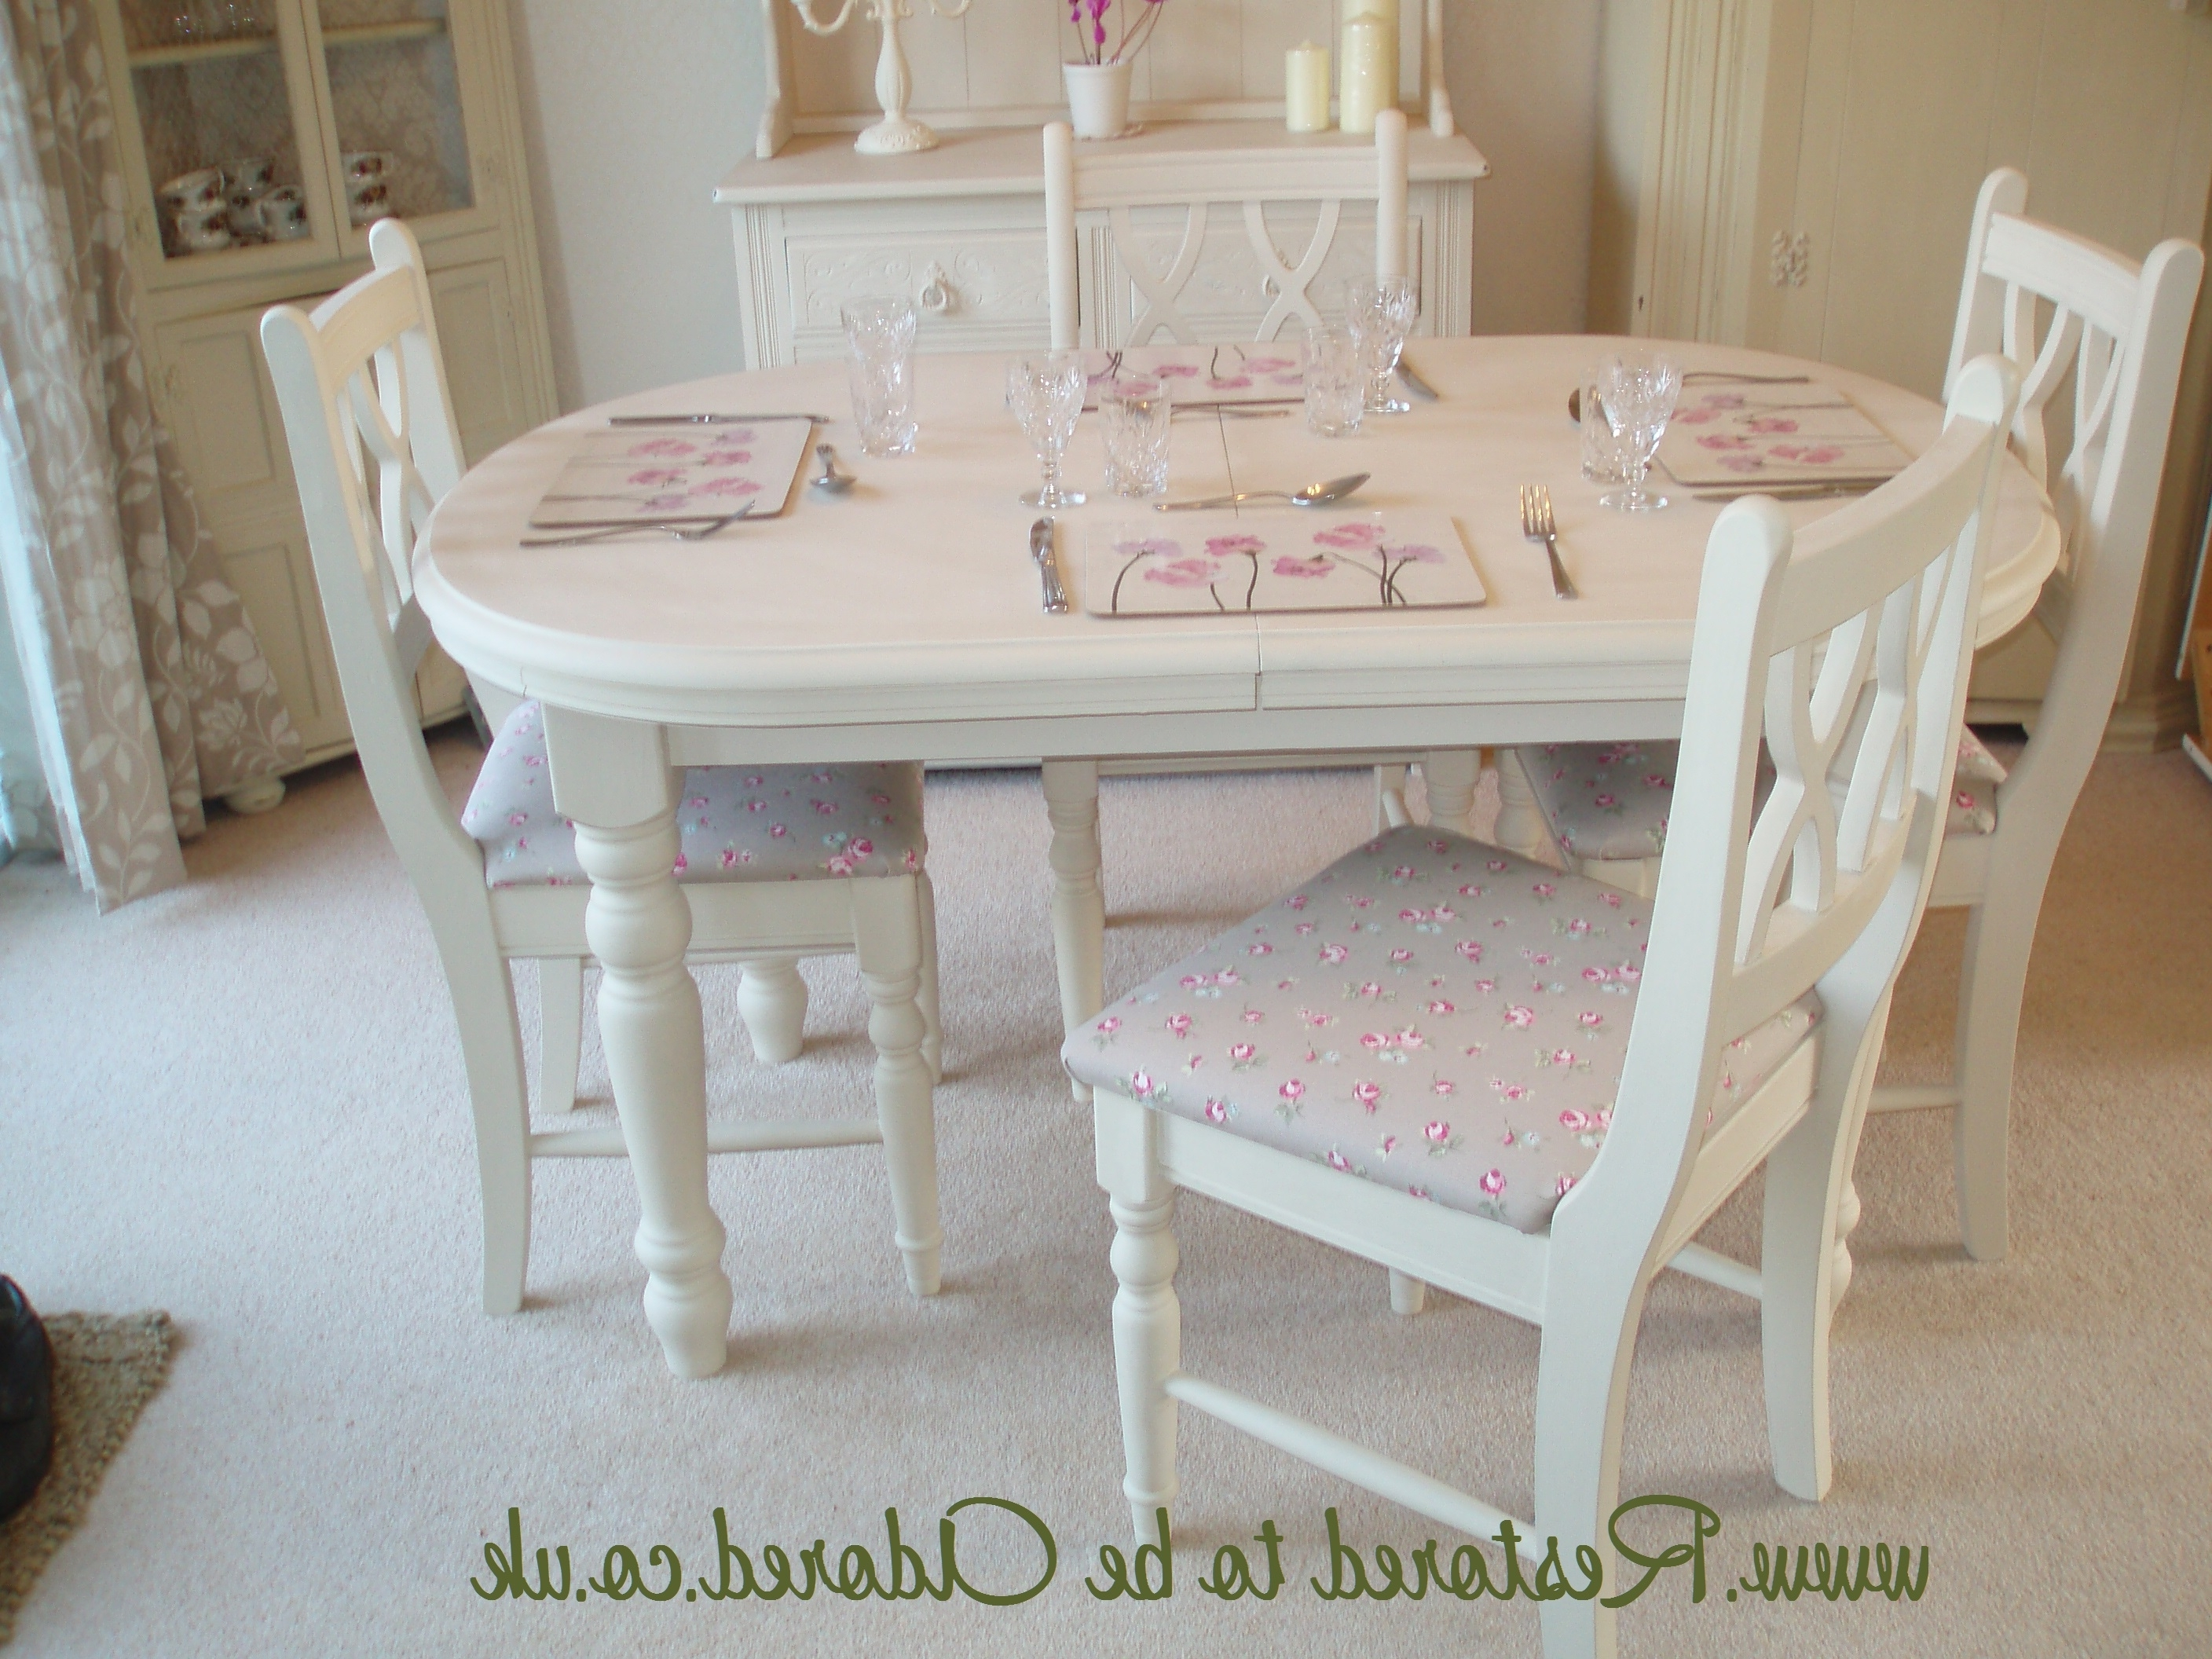 Shabby Chic Kitchen Table For Sale (View 18 of 25)